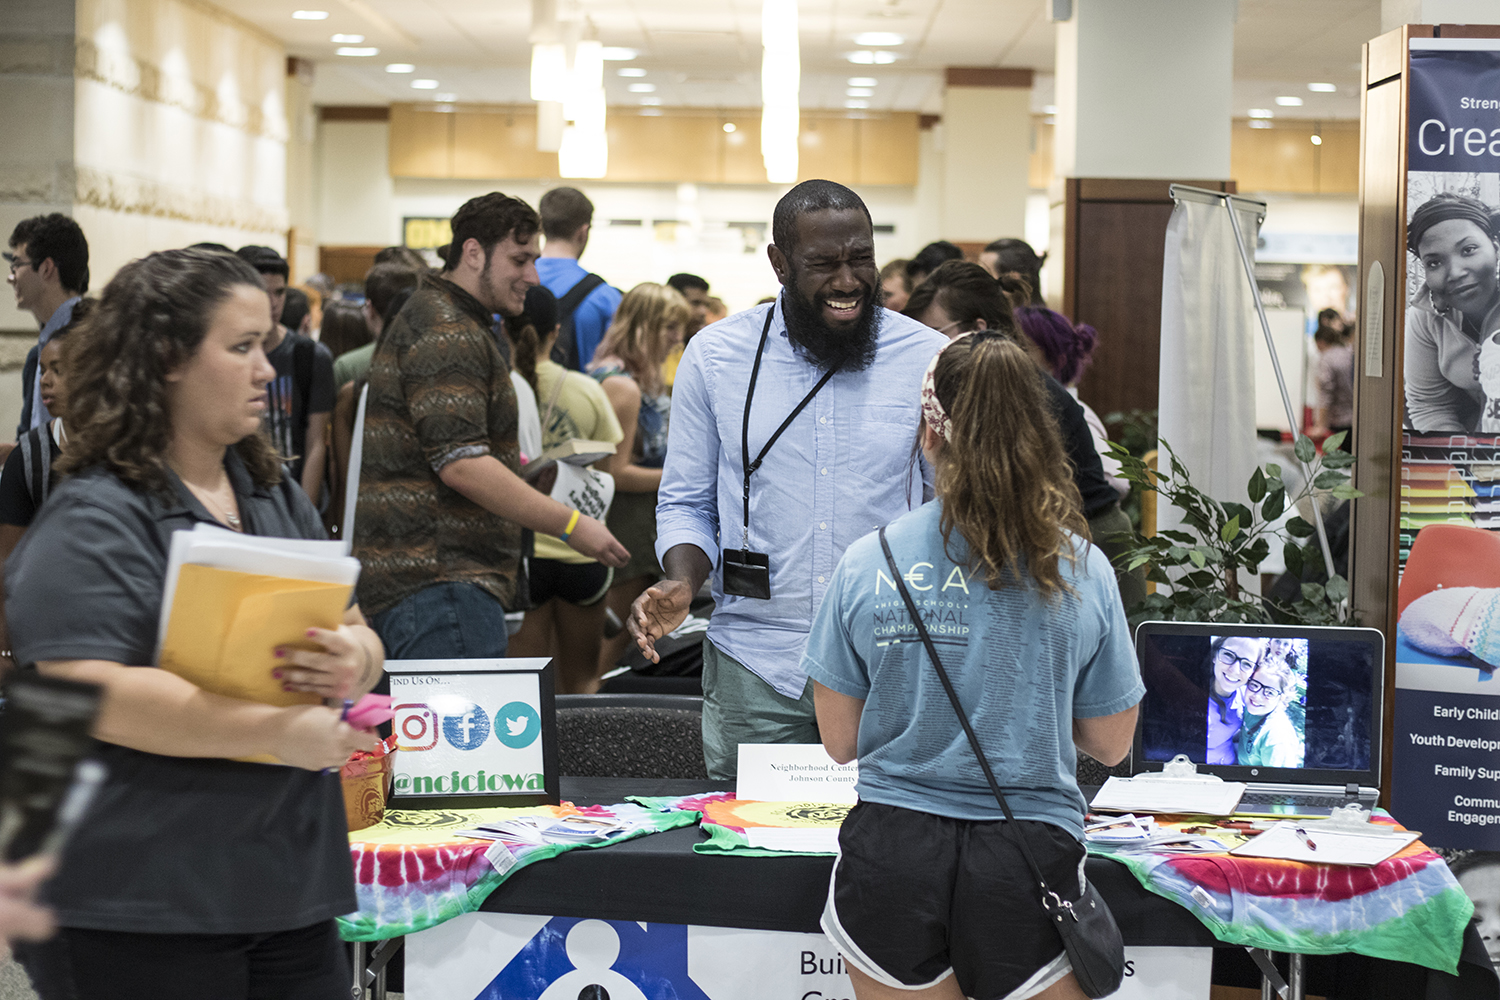 Tony Branch from the Neighborhood Centers of Johnson County speaks to an inquiring student at the student Organization Fair in the IMU on Thursday, Aug. 30, 2018.